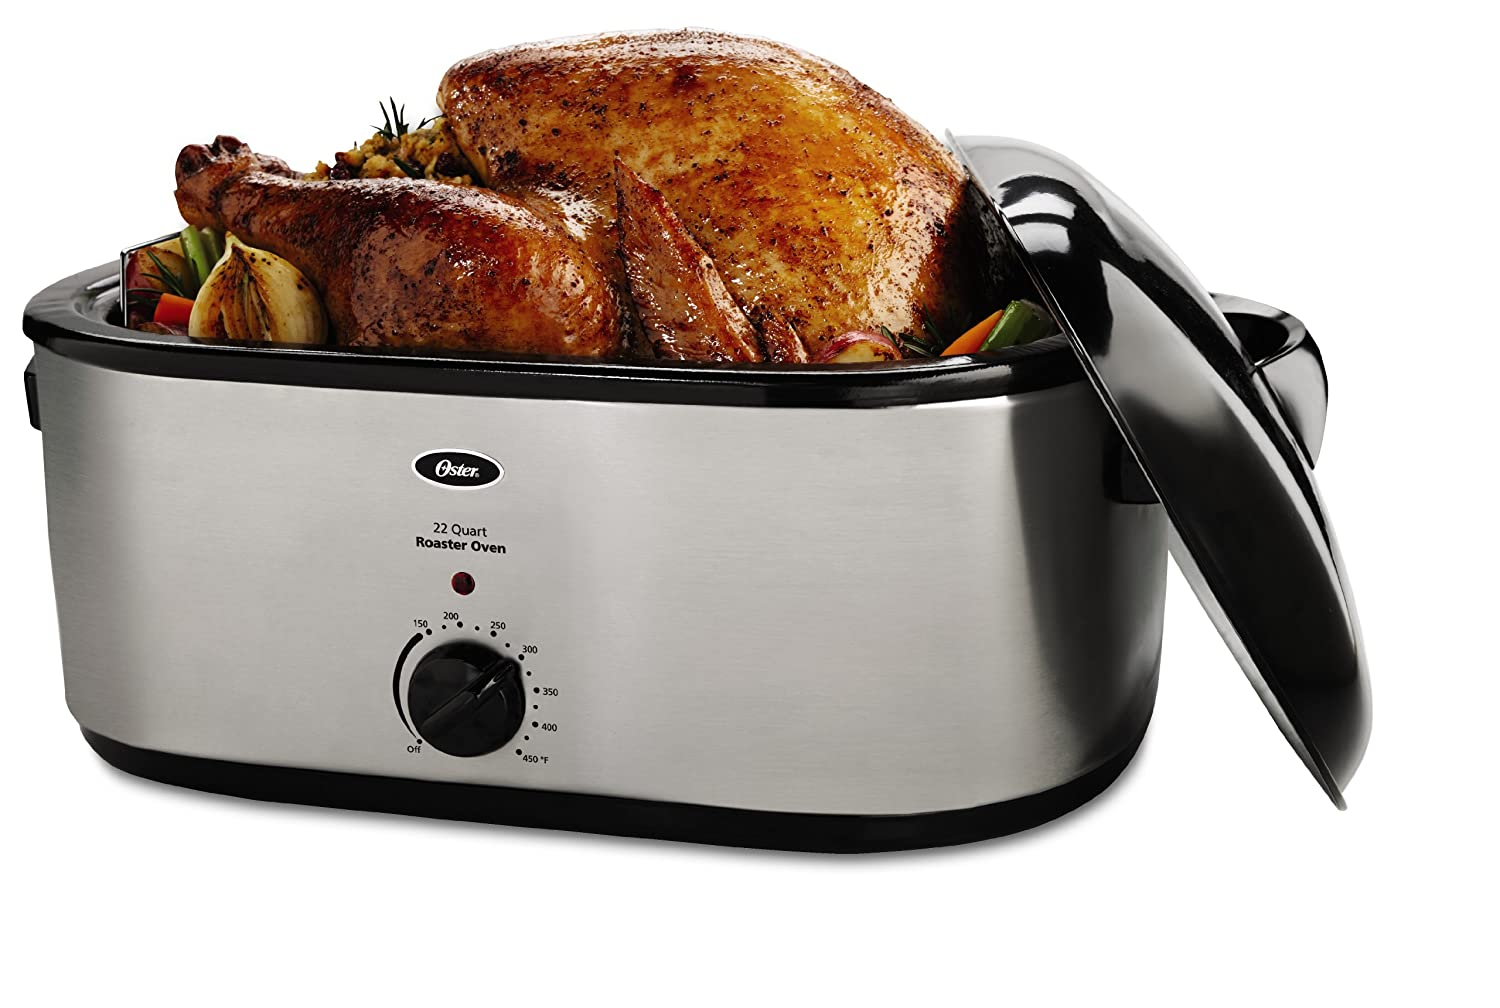 Superb Amazon.com: Oster CKSTRS23 22 Quart Roaster Oven, Stainless Steel: Electric  Roasters: Kitchen U0026 Dining